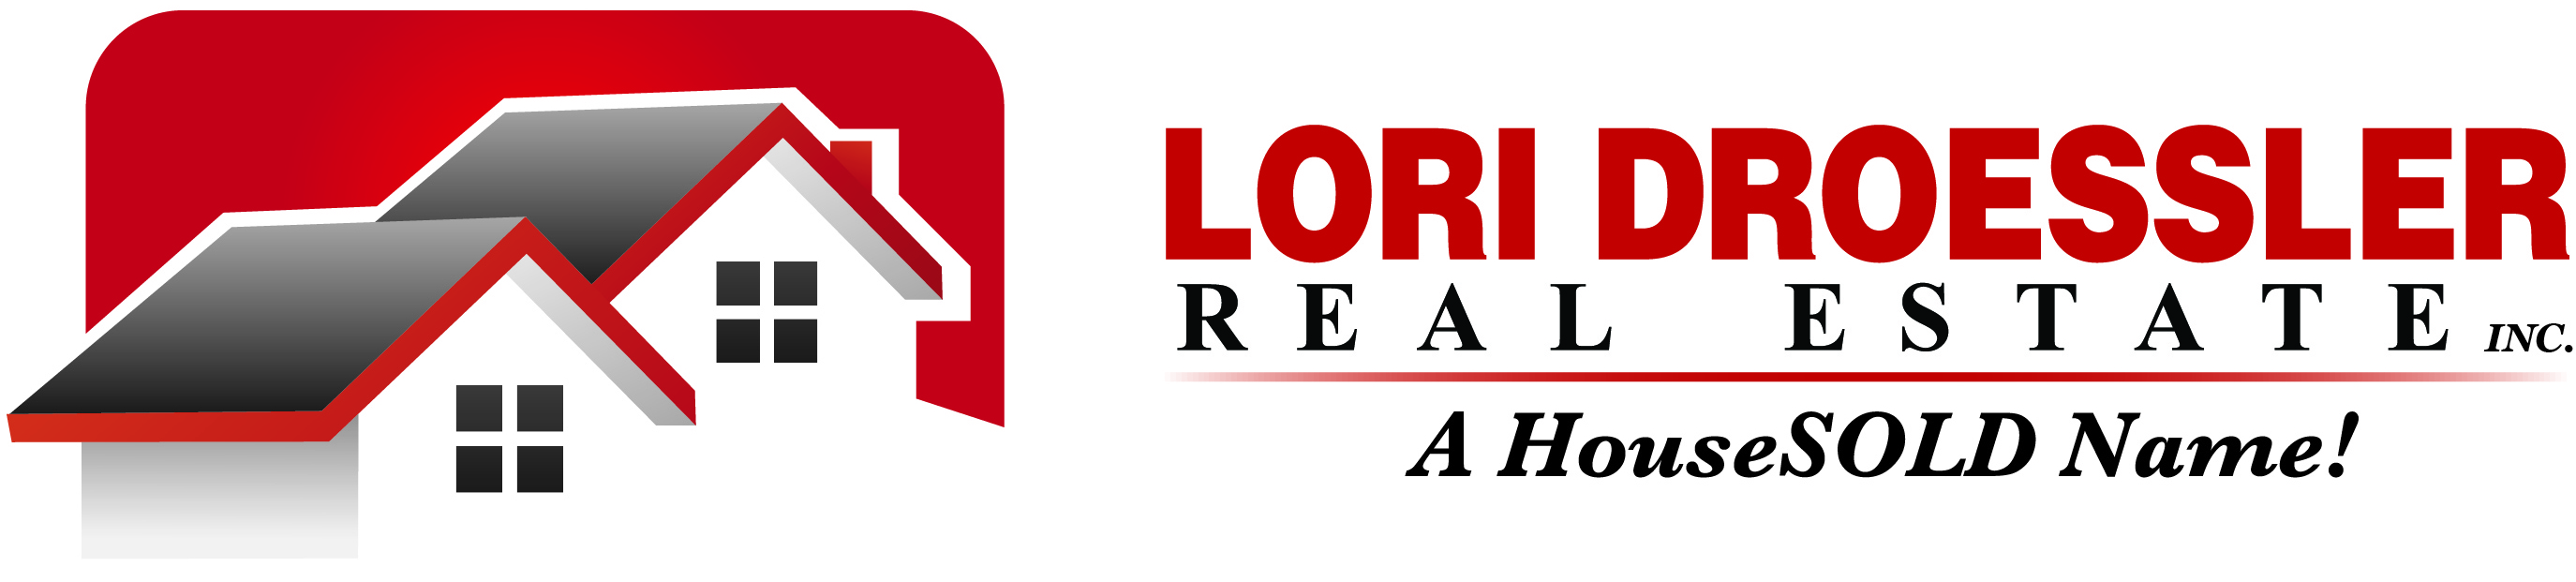 Lori Droessler Real Estate